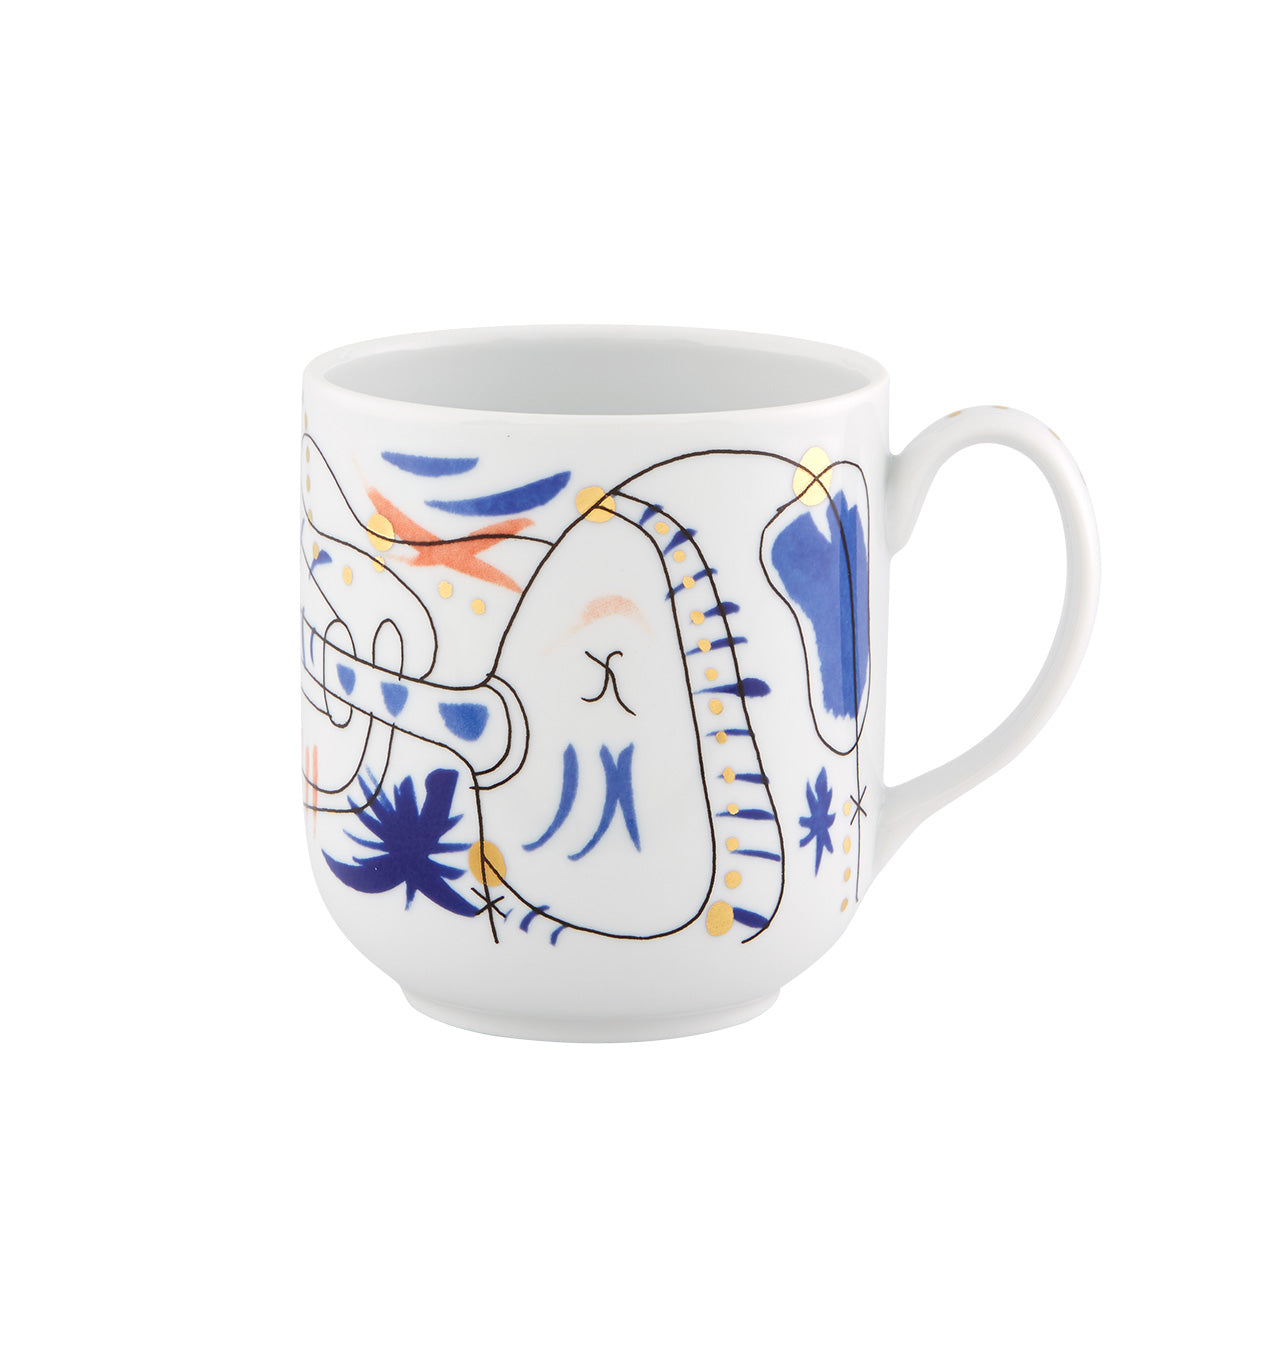 Folkifunki Mug Set of 4